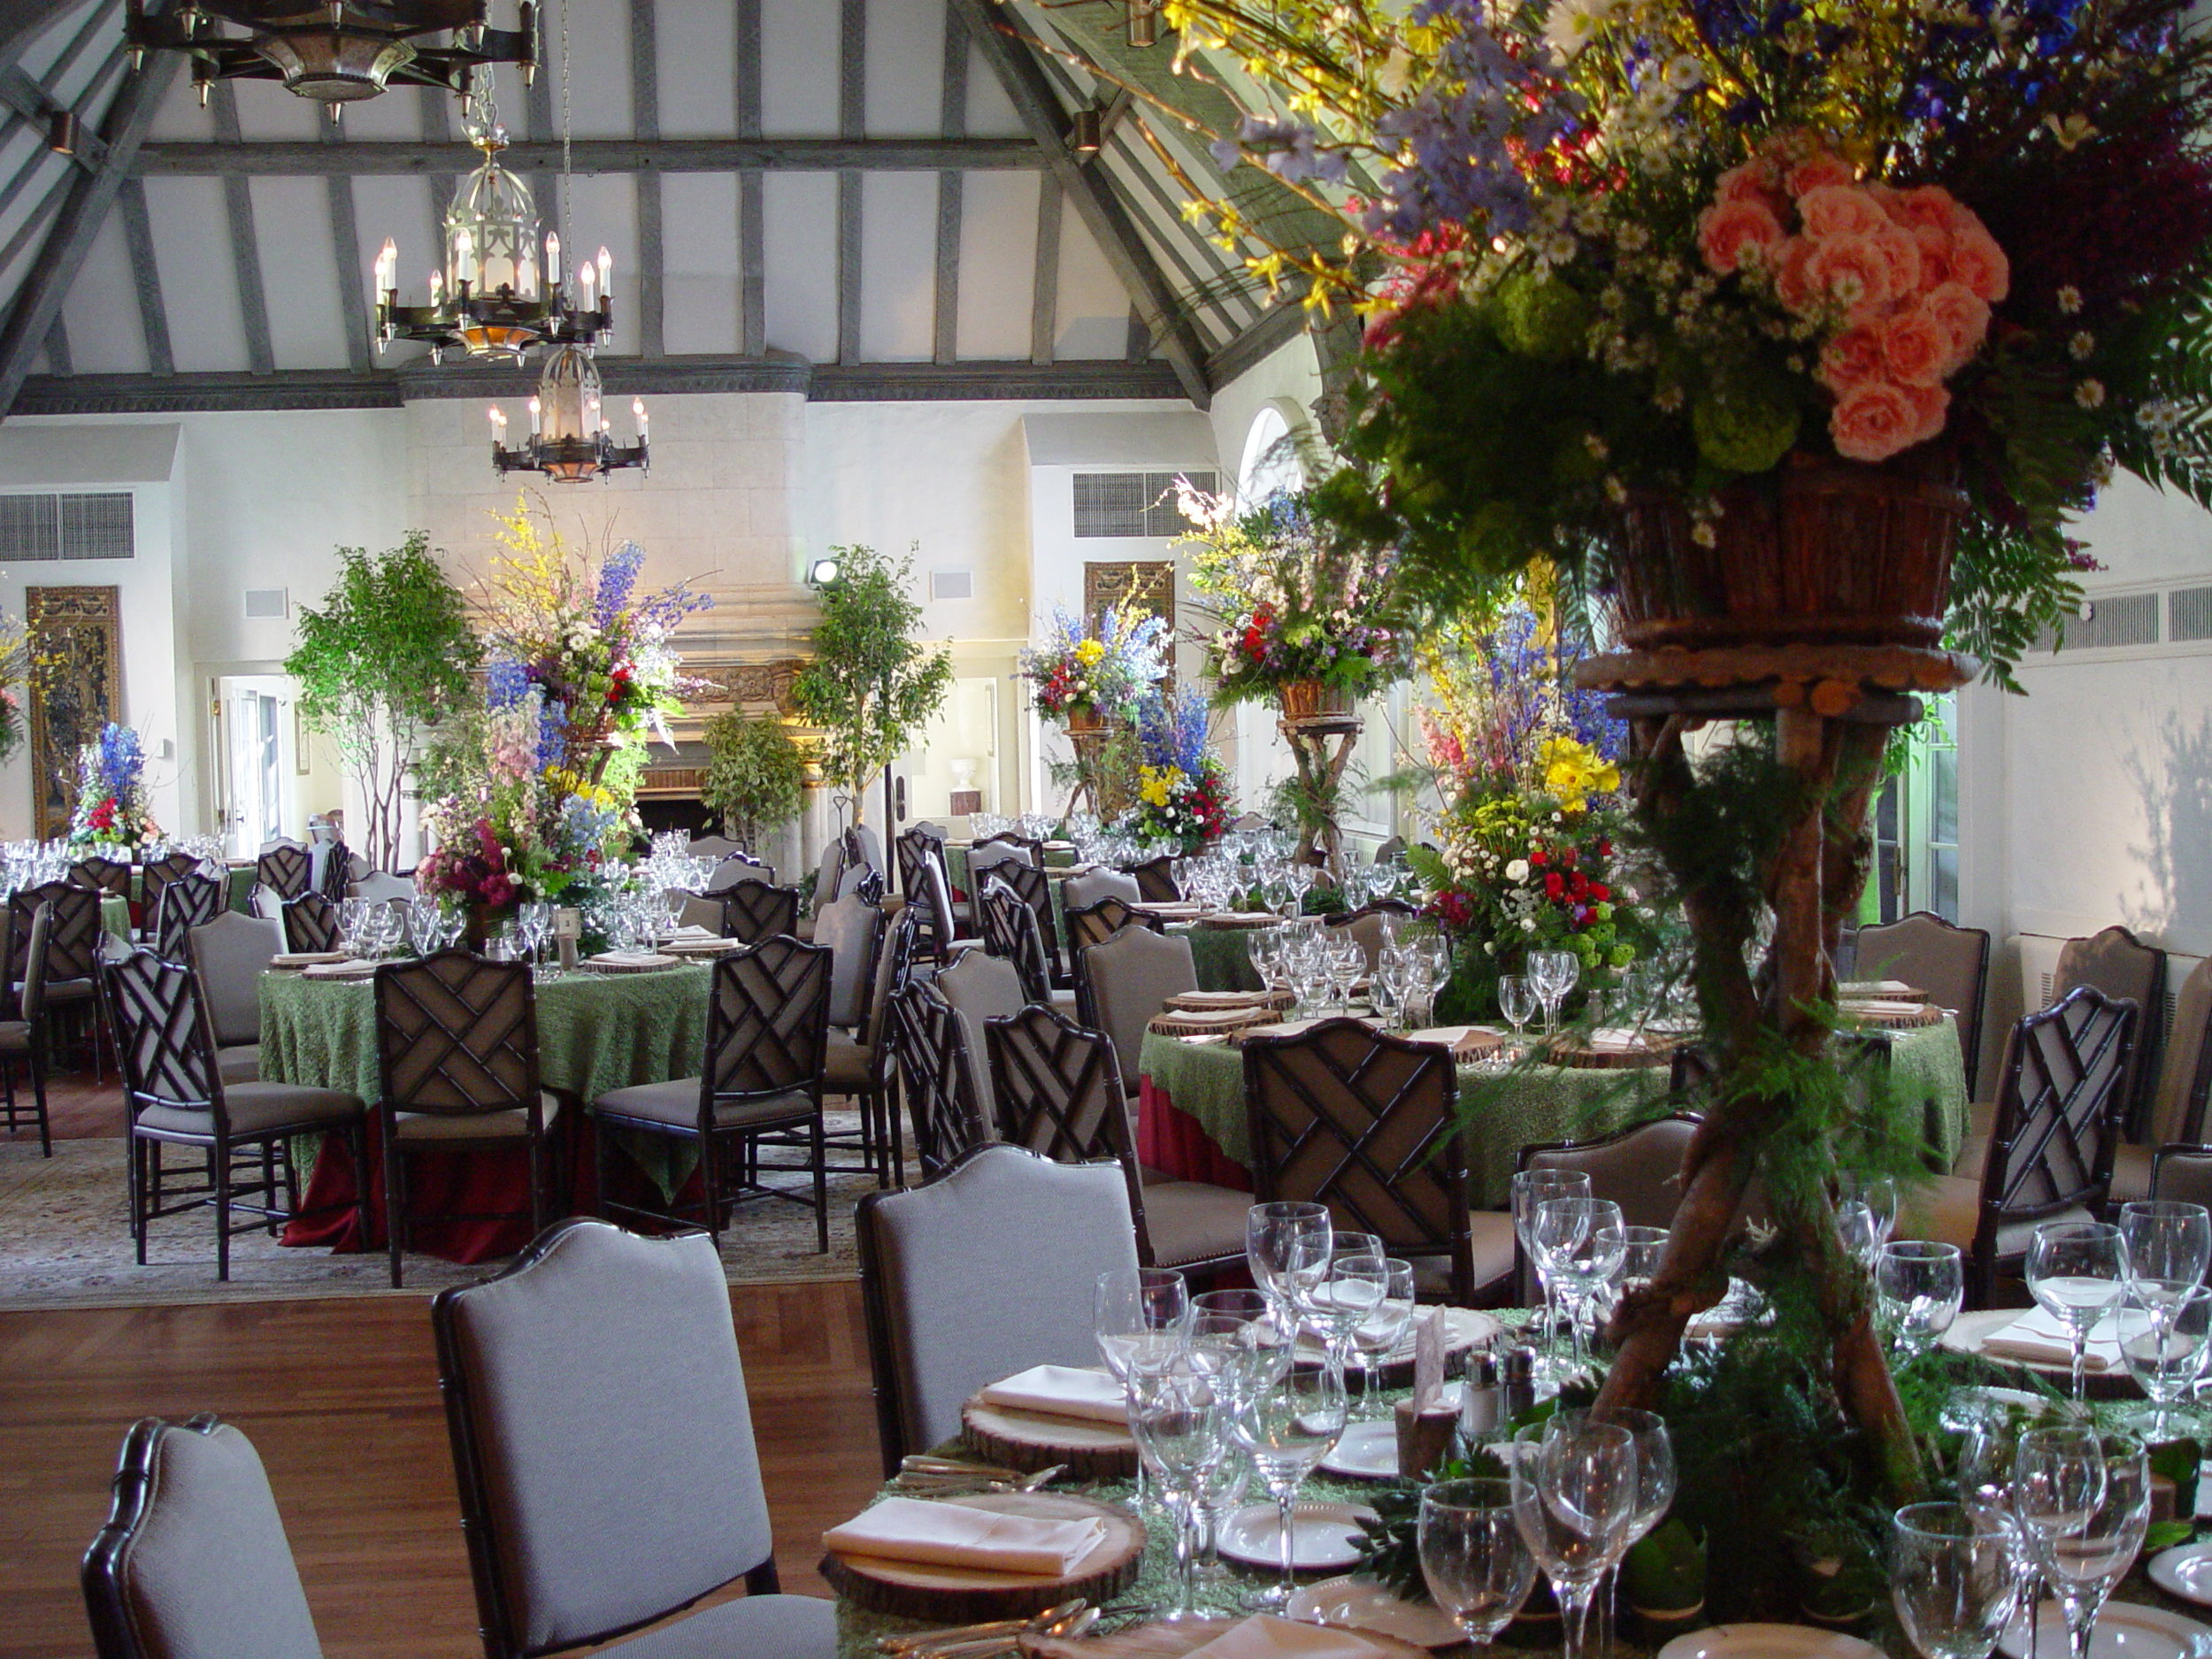 rustic+props+decor+centerpieces+for+rent+rentals+nj+ny+pa+eggsotic+events.jpg